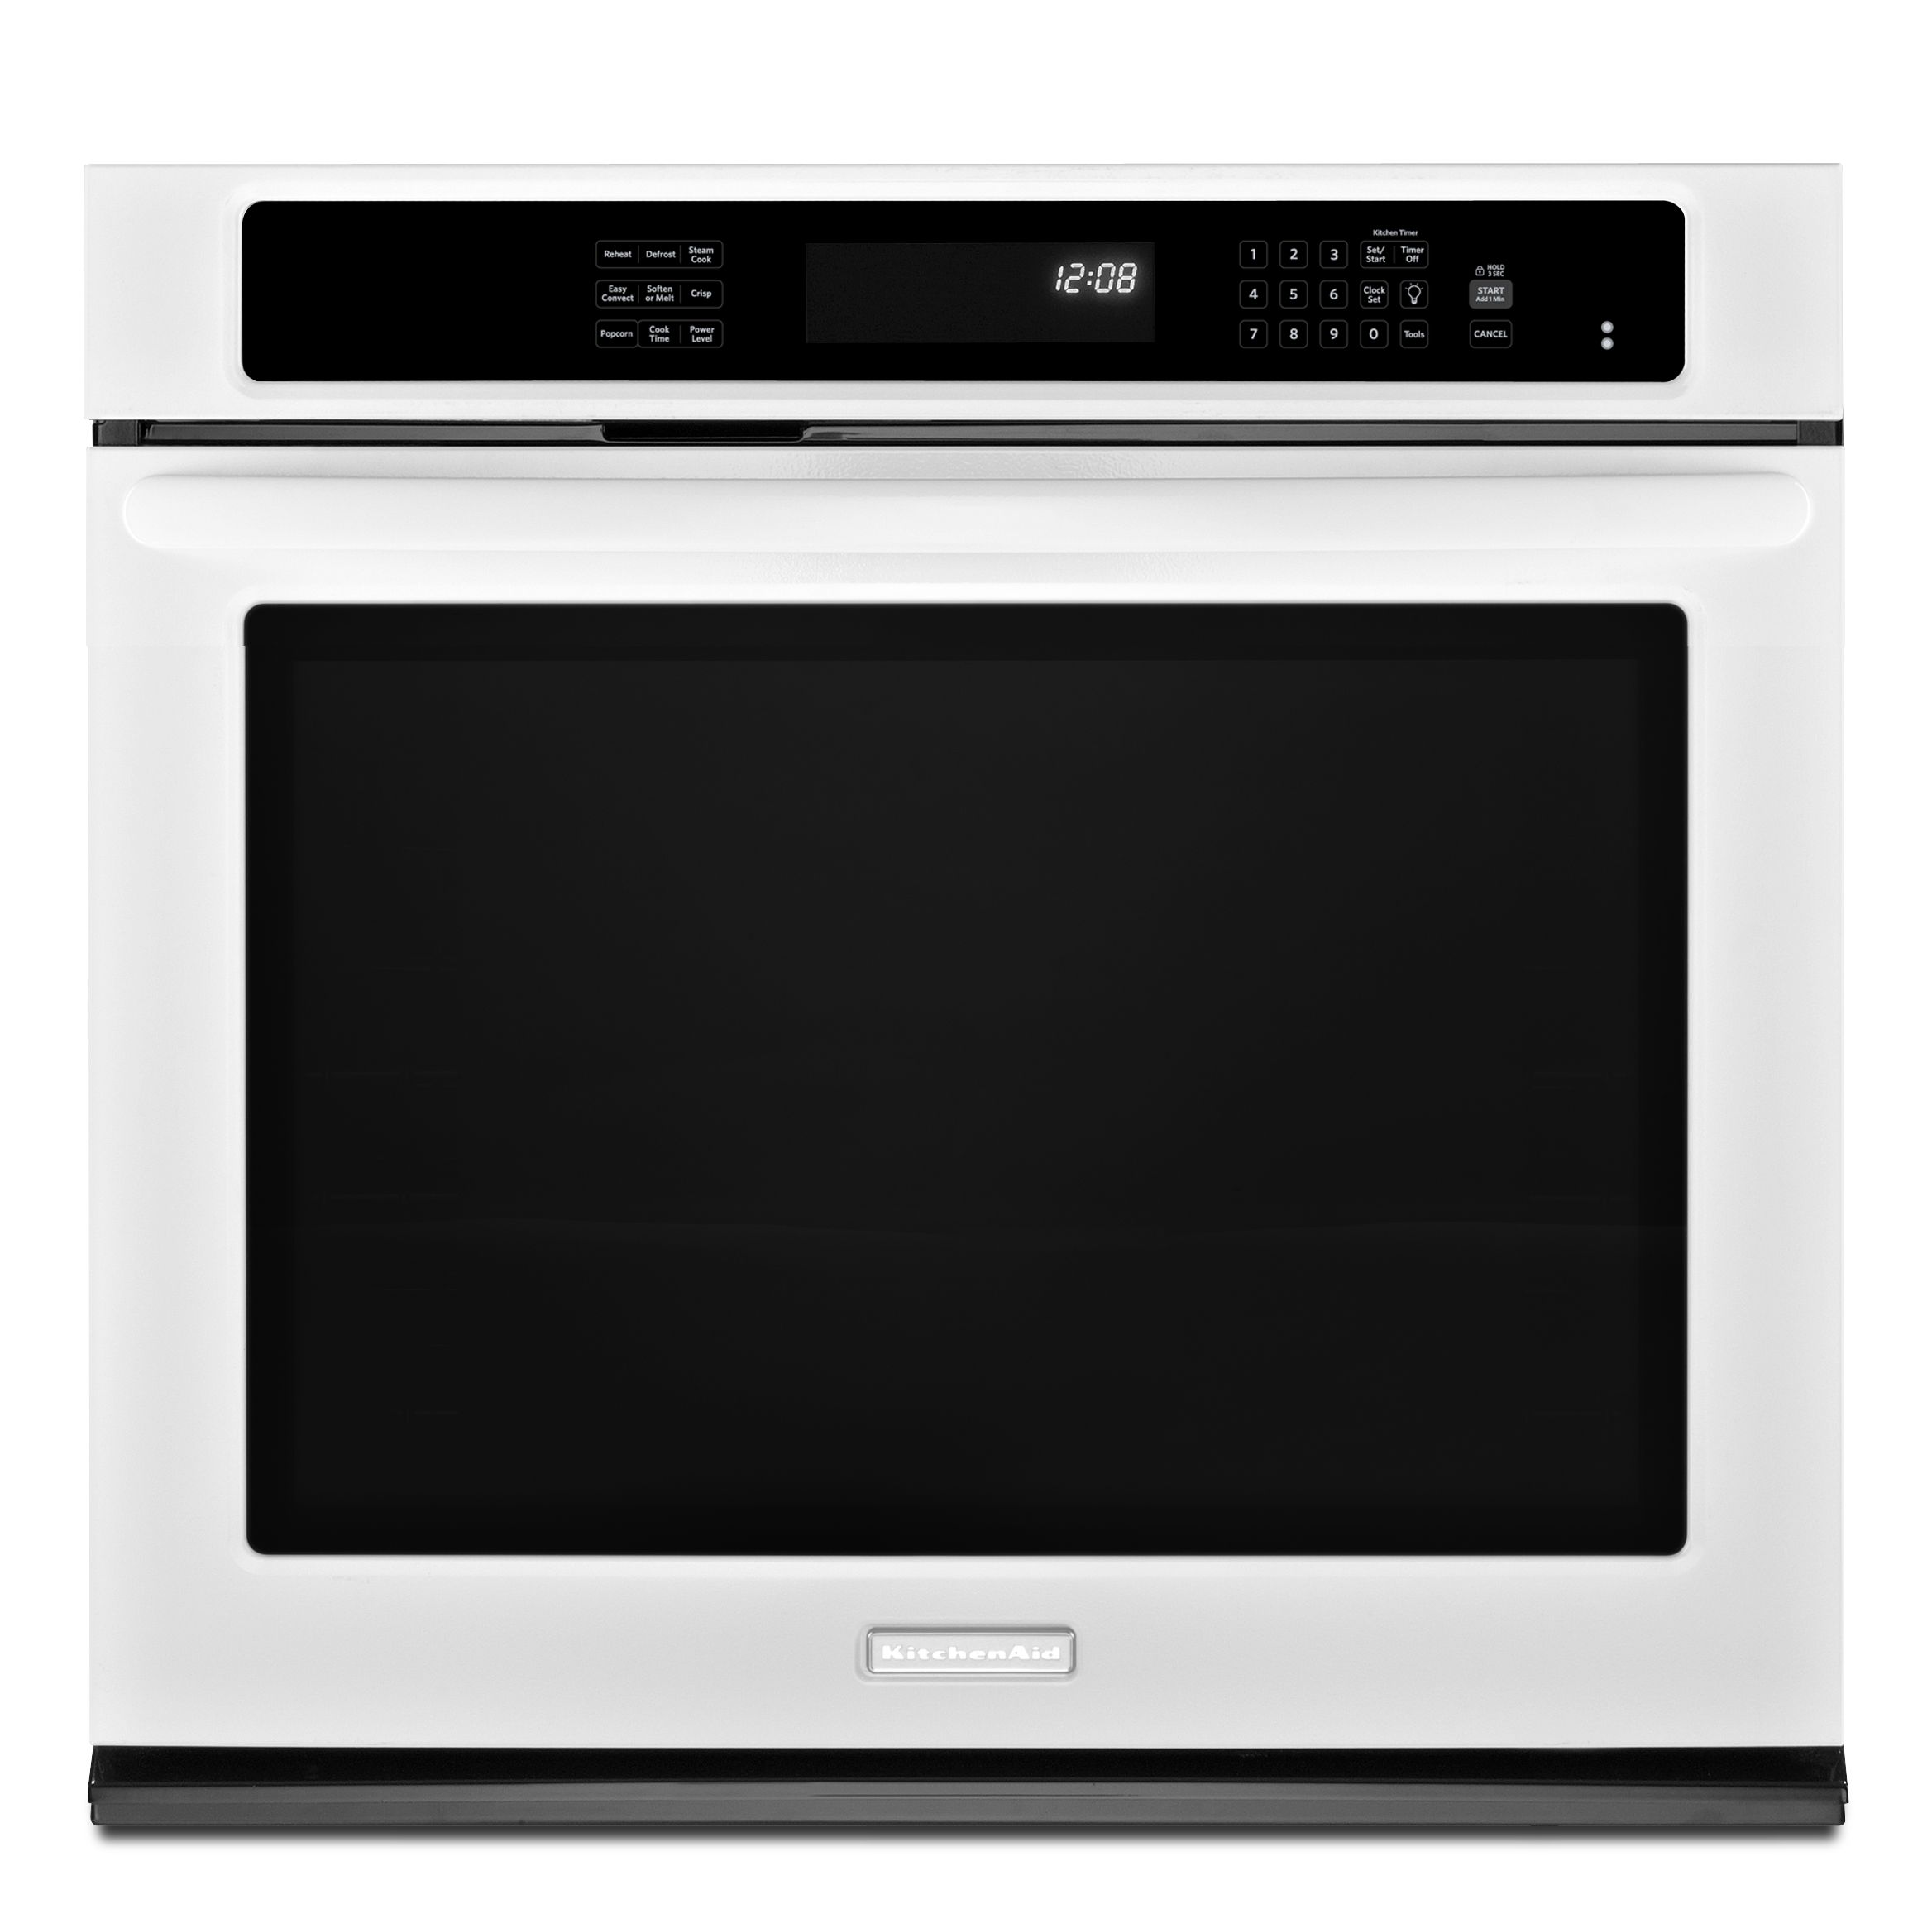 KitchenAid KEBS109BWH 30 Built-in Single Wall Oven with Even-Heat Technology - White